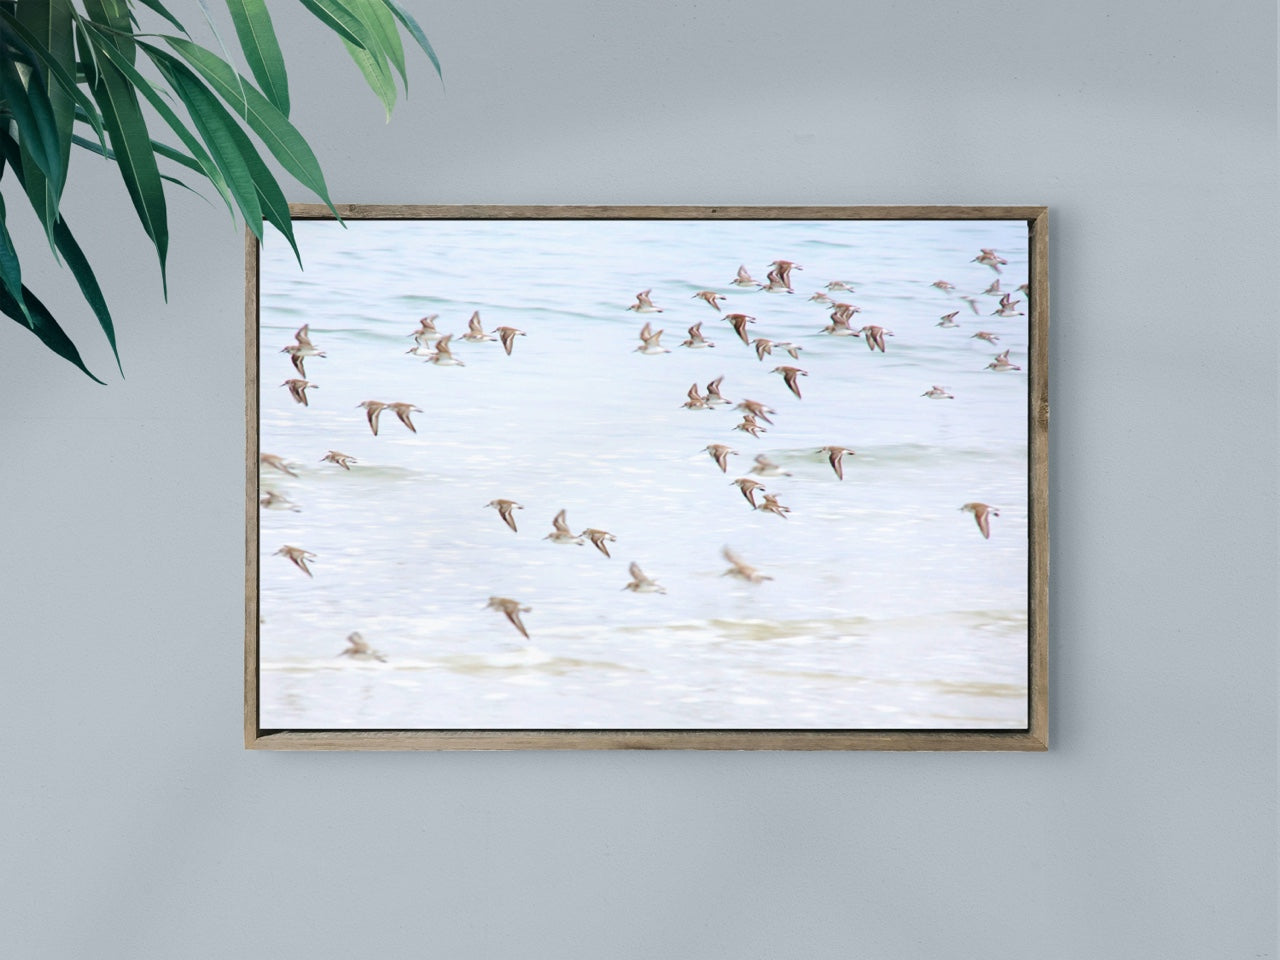 Framed canvas print of seagulls flying